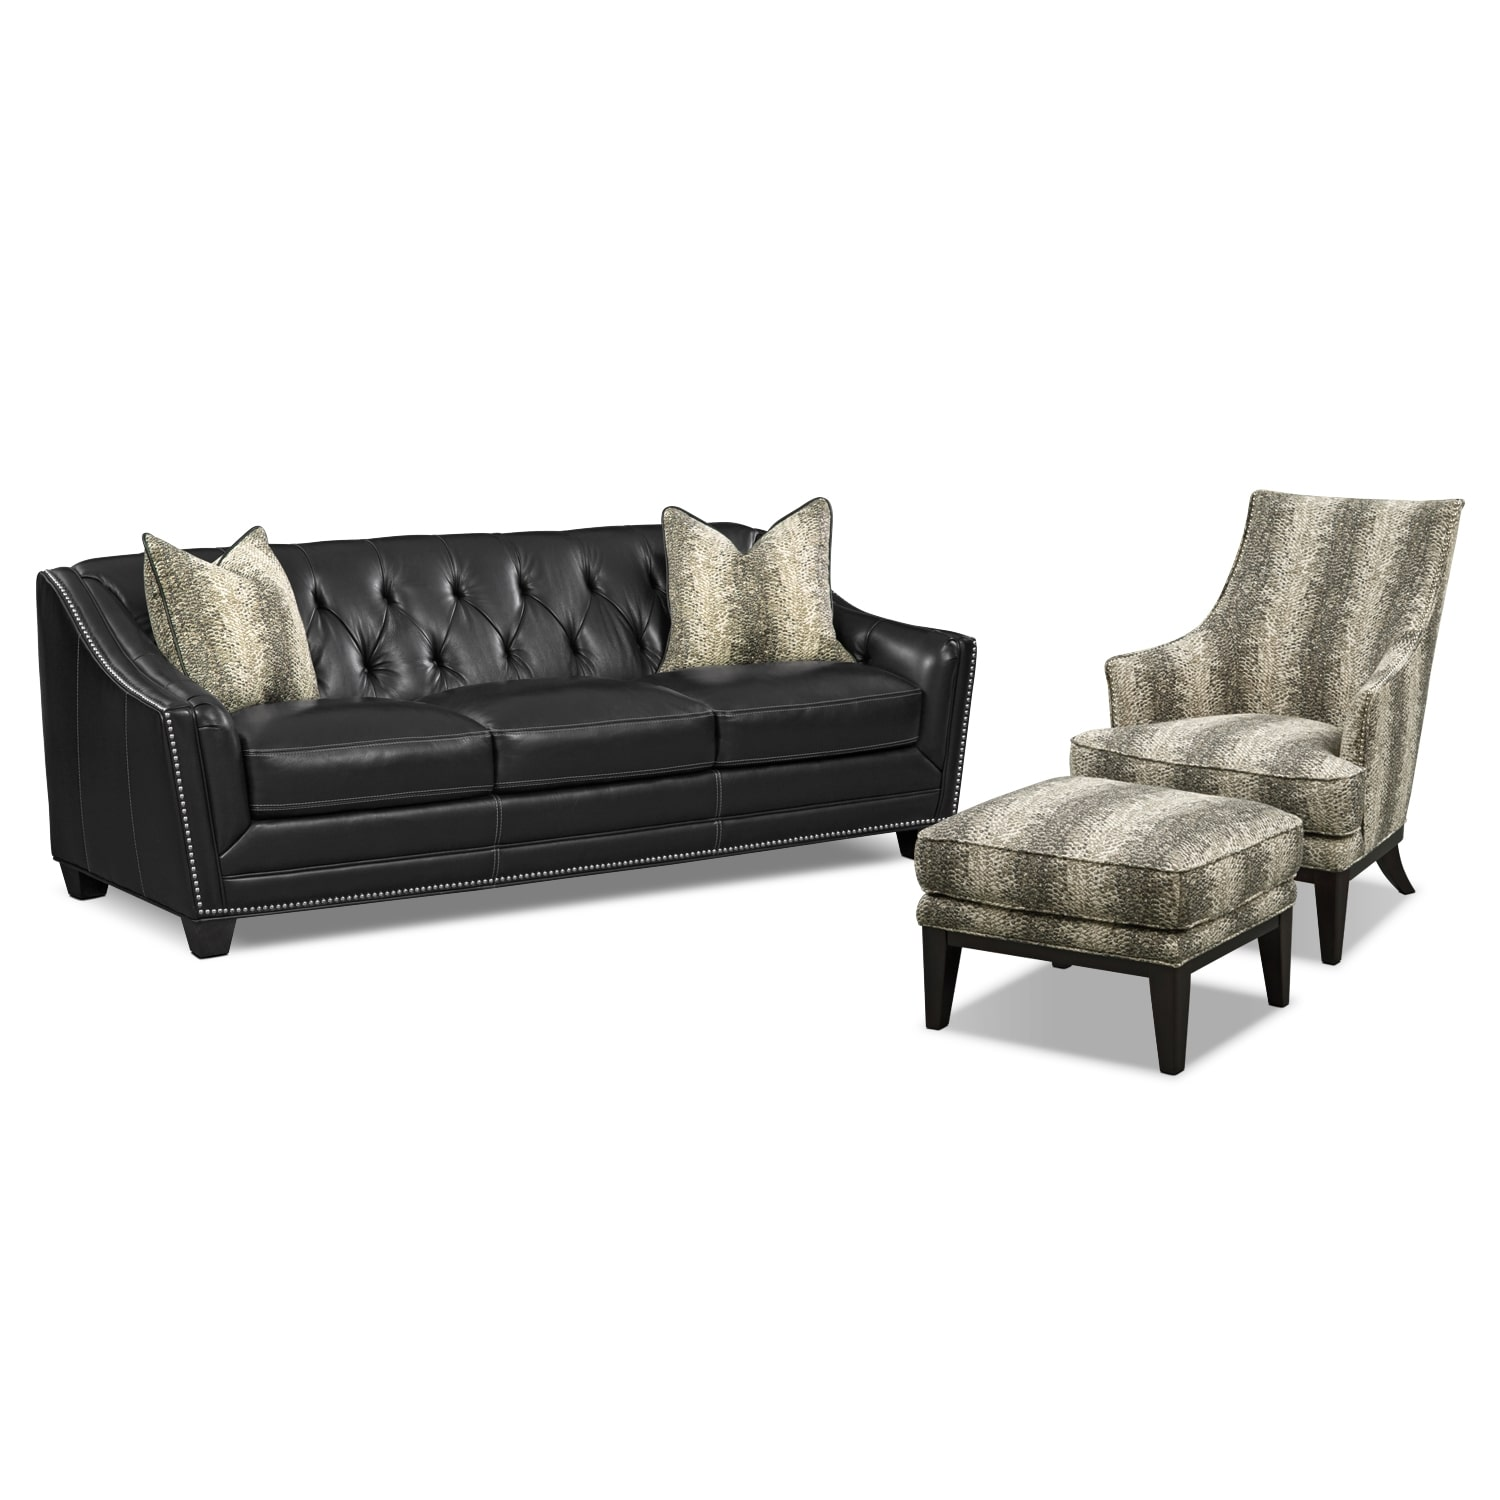 [Alexis Midnight 3 Pc. Living Room w/ Accent Chair]